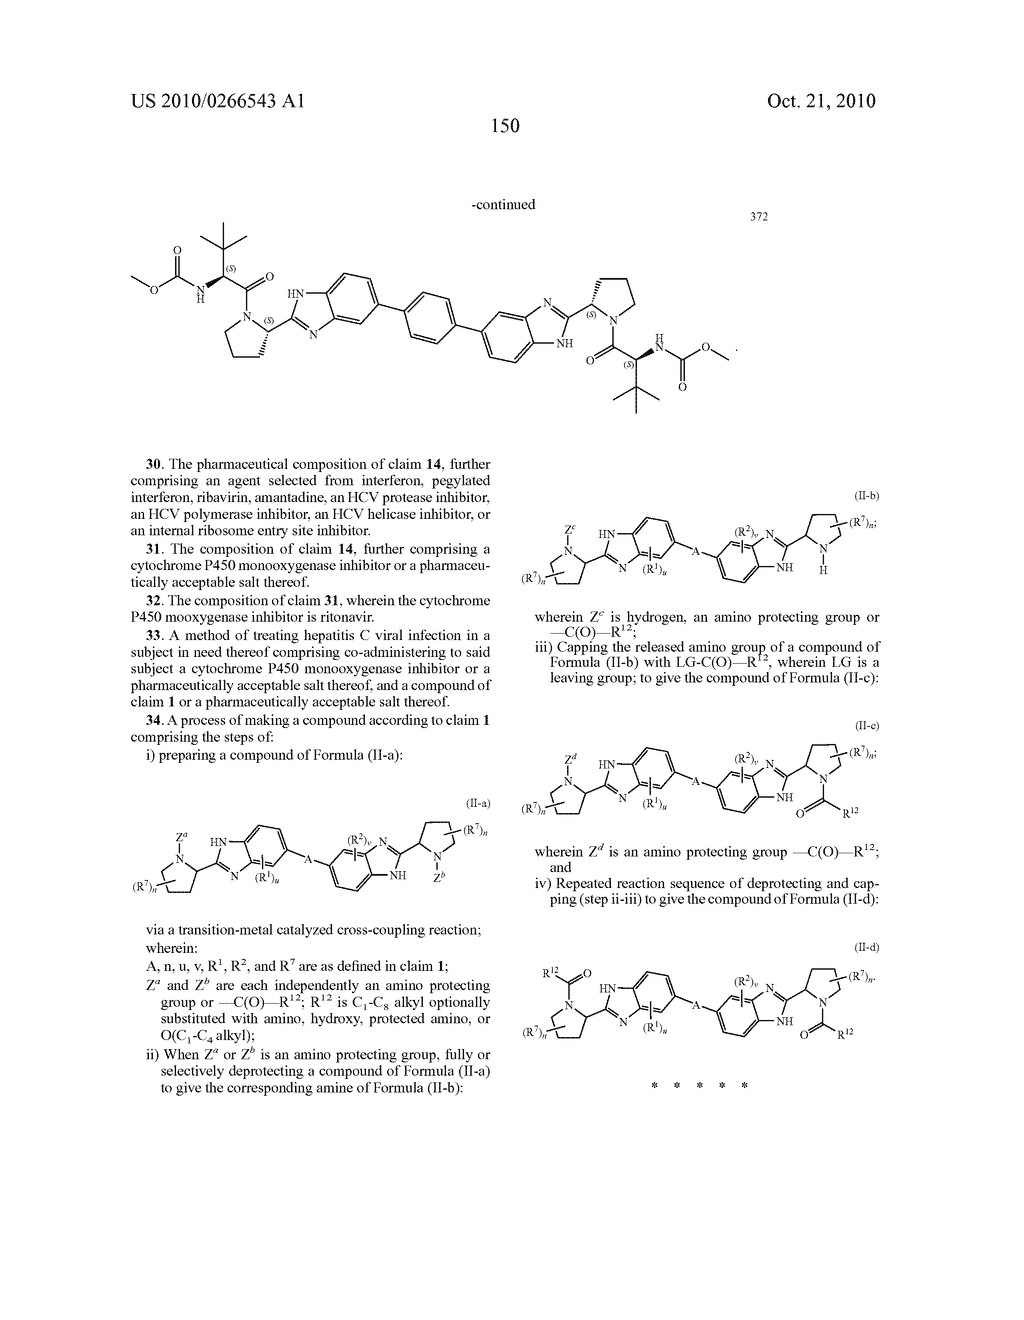 LINKED DIBENZIMIDAZOLE ANTIVIRALS - diagram, schematic, and image 153